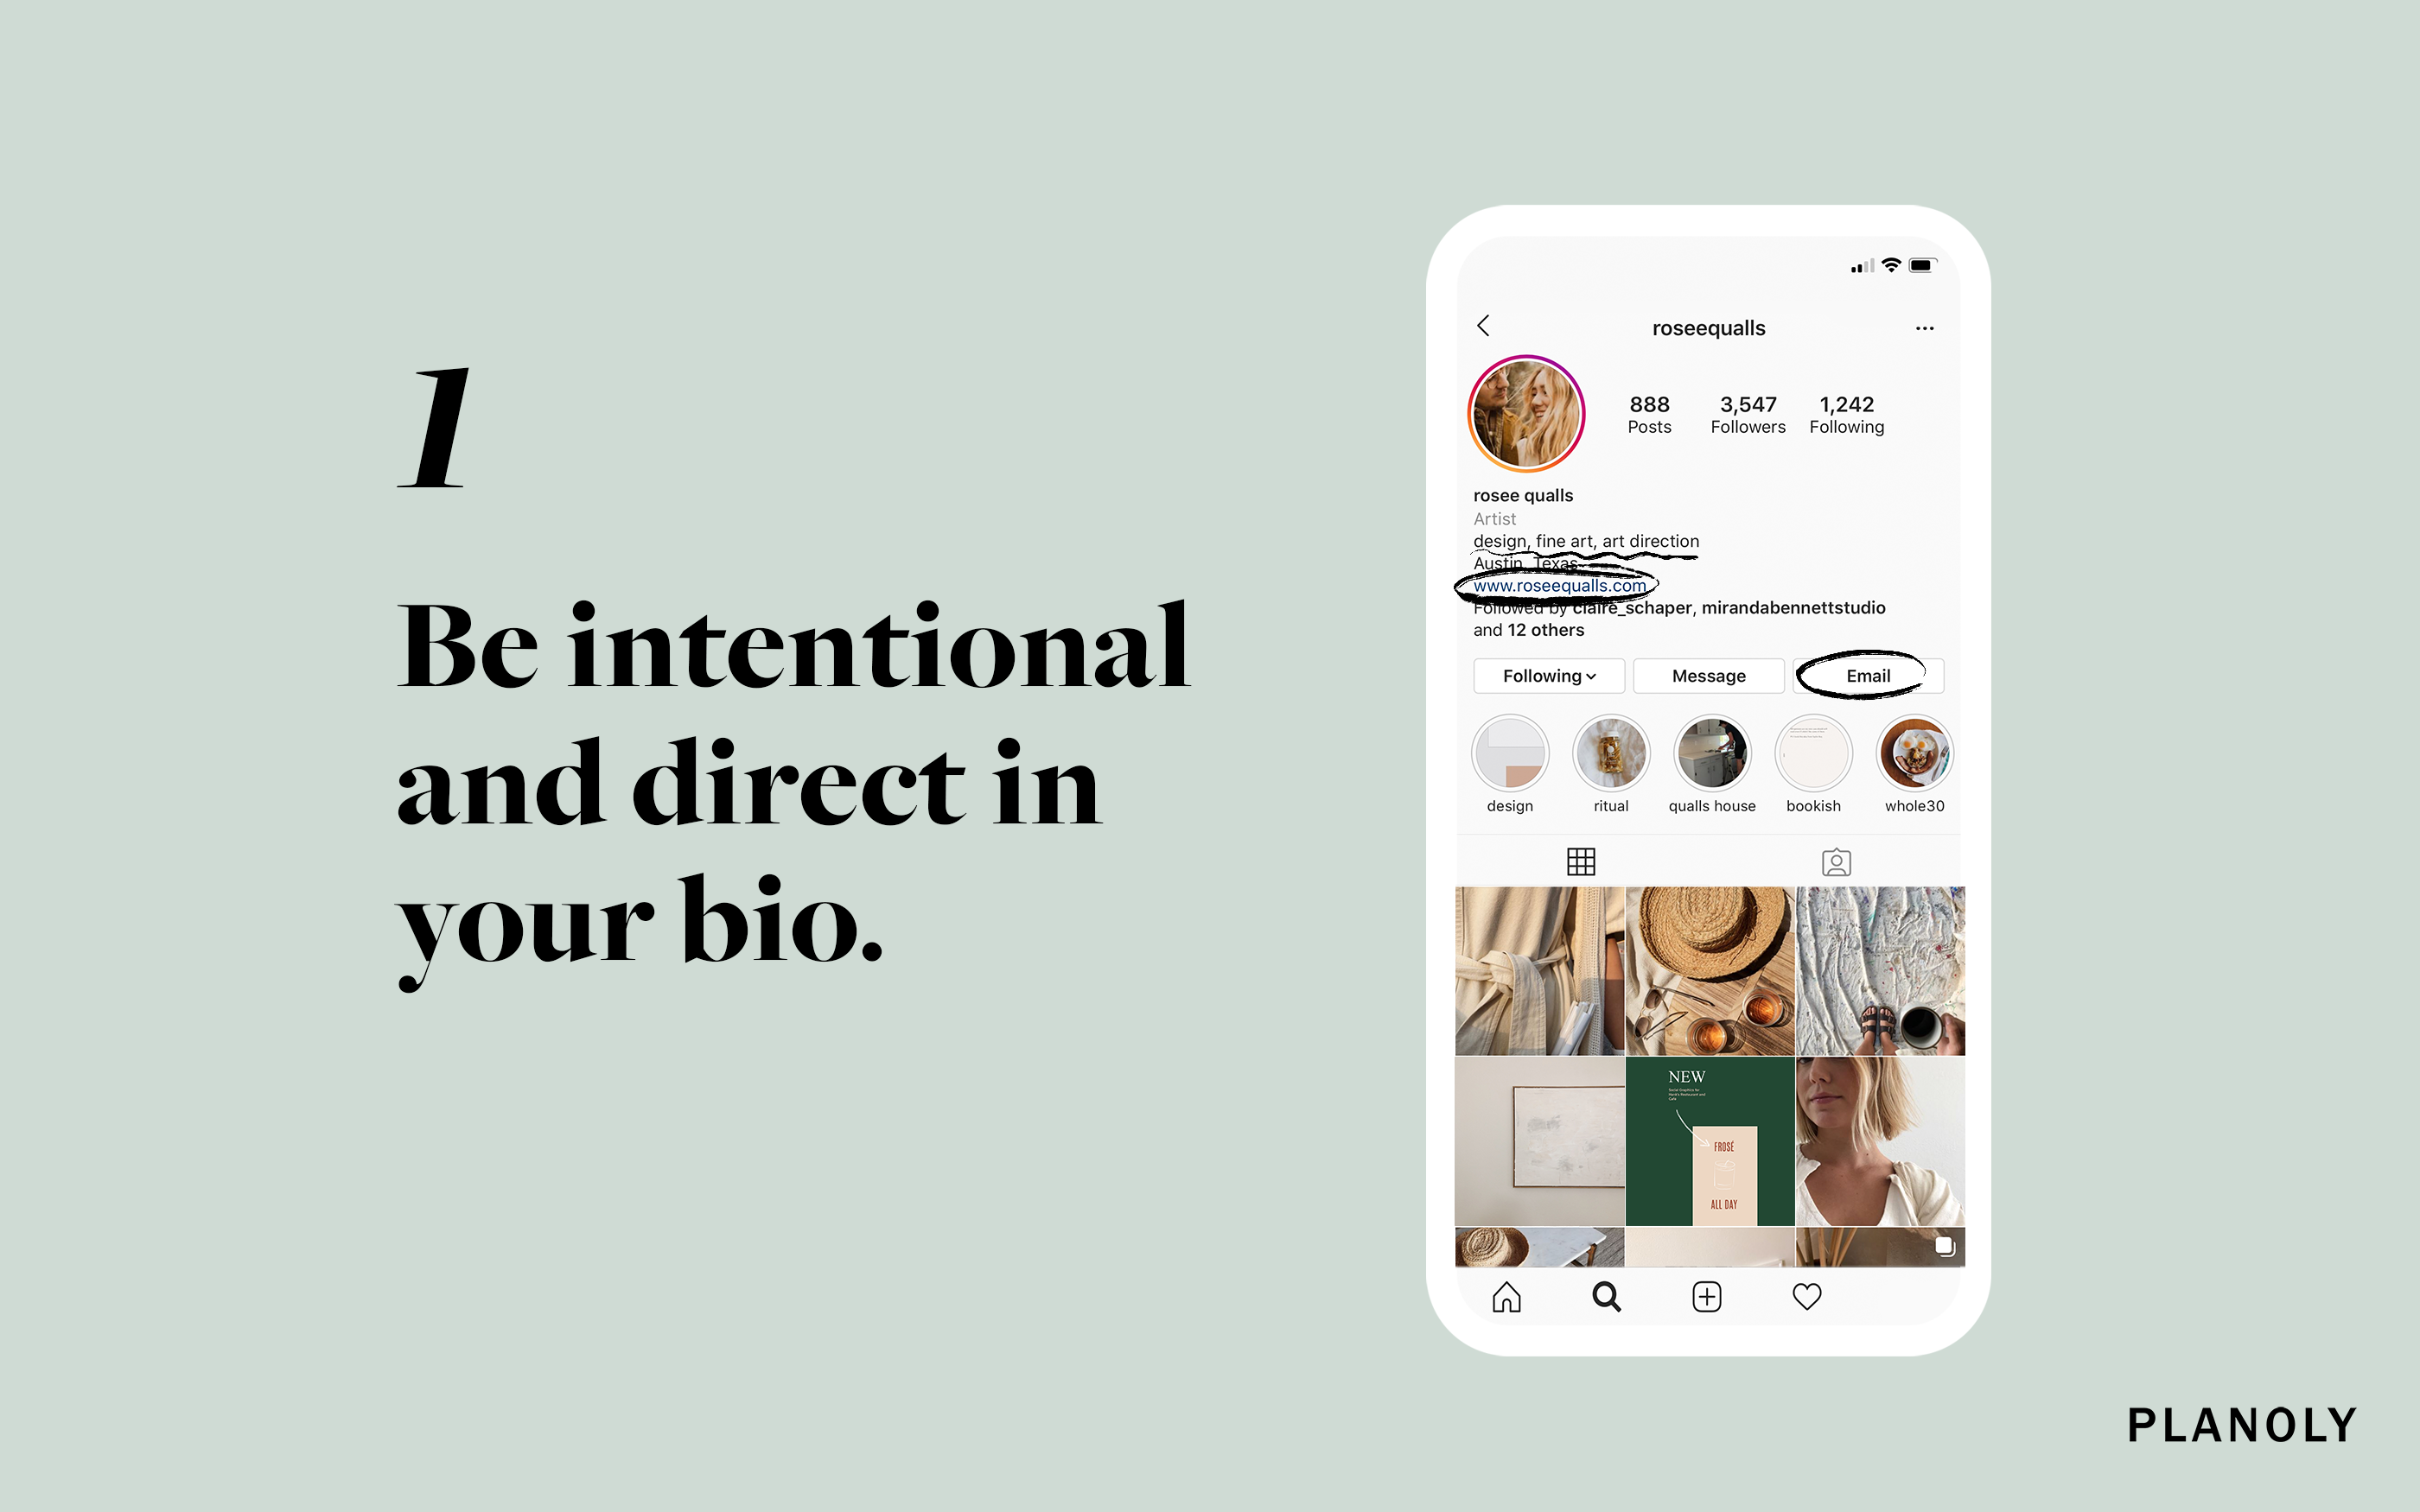 PLANOLY - Blog Post - 4 Easy ways to promote your design work on Instagram - Image 1